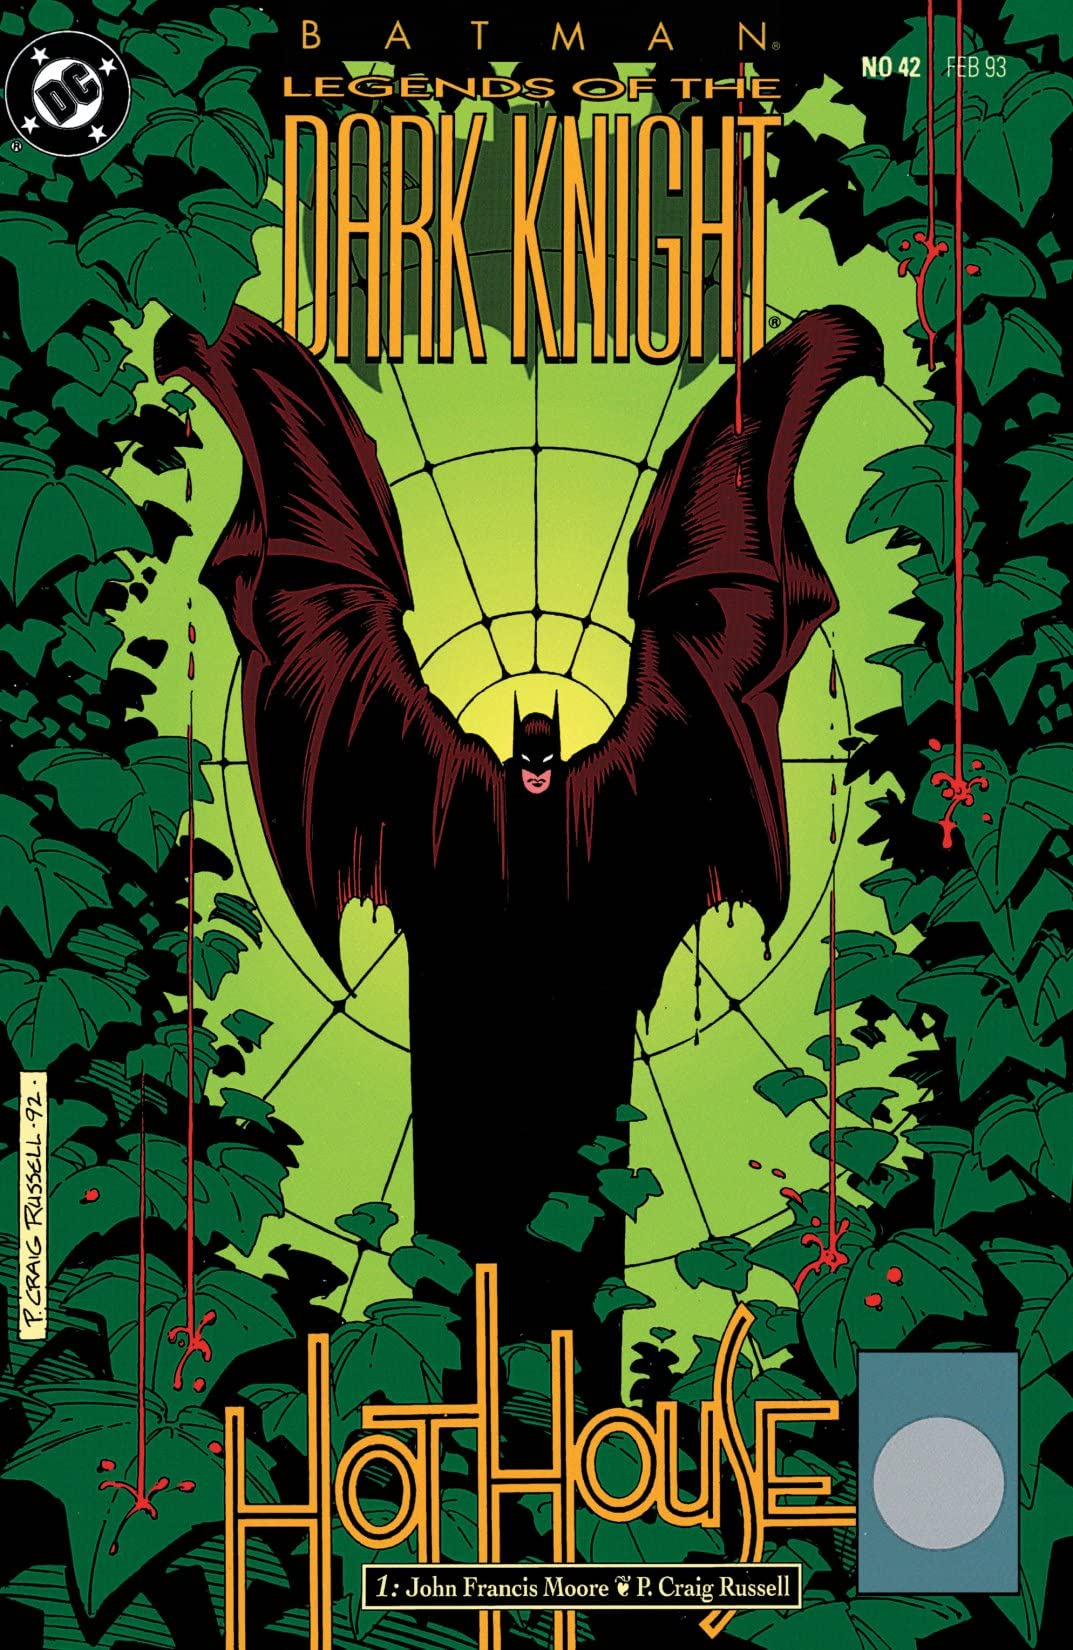 Batman: Legends of the Dark Knight #42